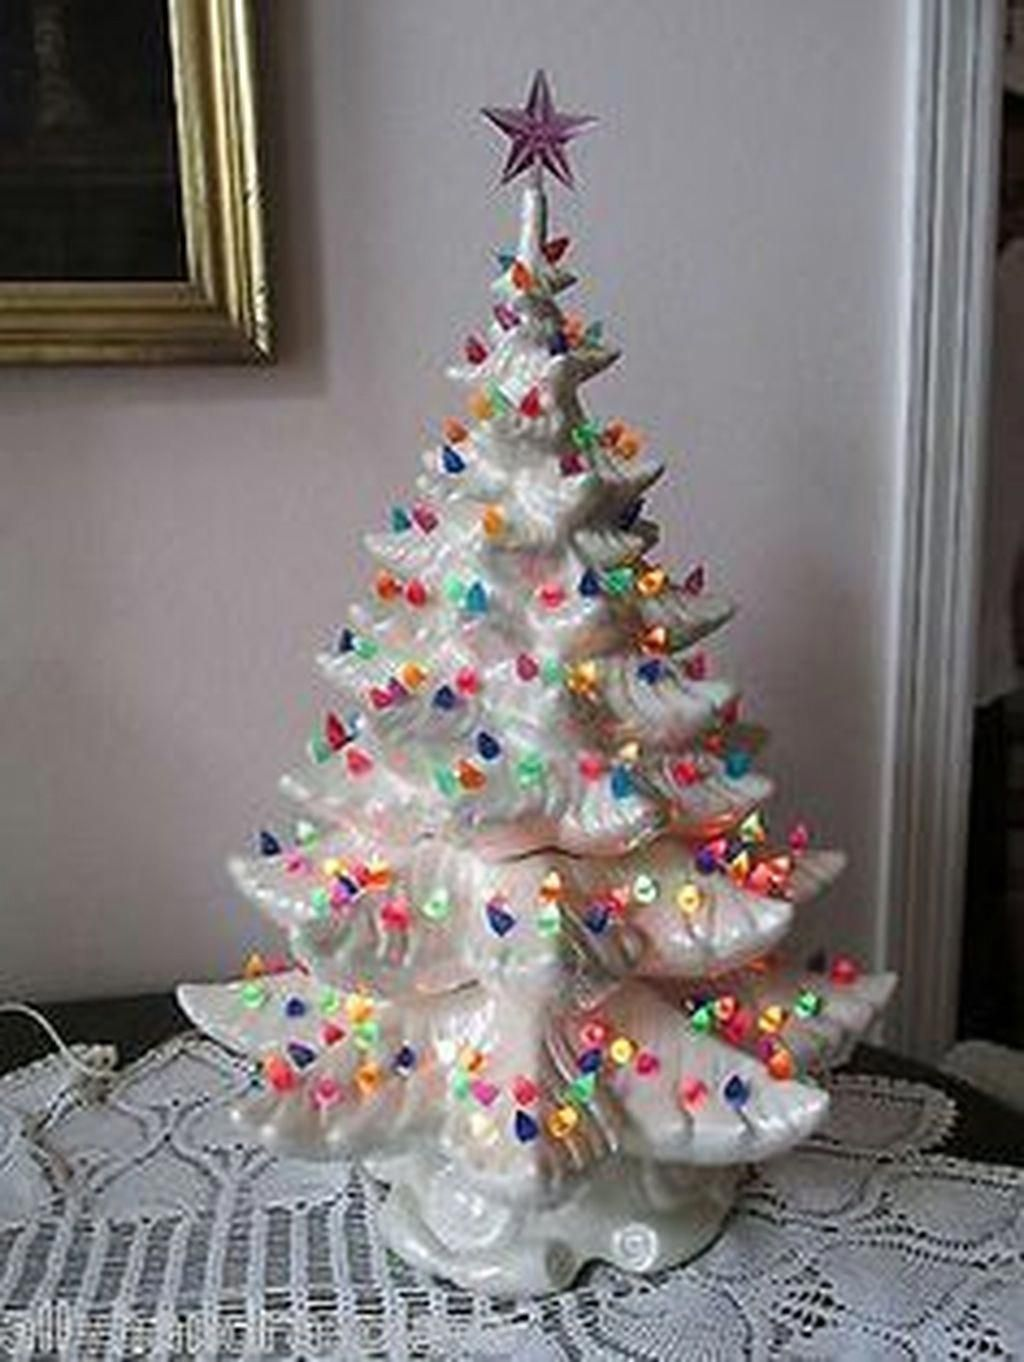 Junk A Very Large Number Hand Made Classic And One Of A Kind Goods And The Ceramic Christmas Trees Vintage Christmas Tree Vintage Christmas Tree Decorations